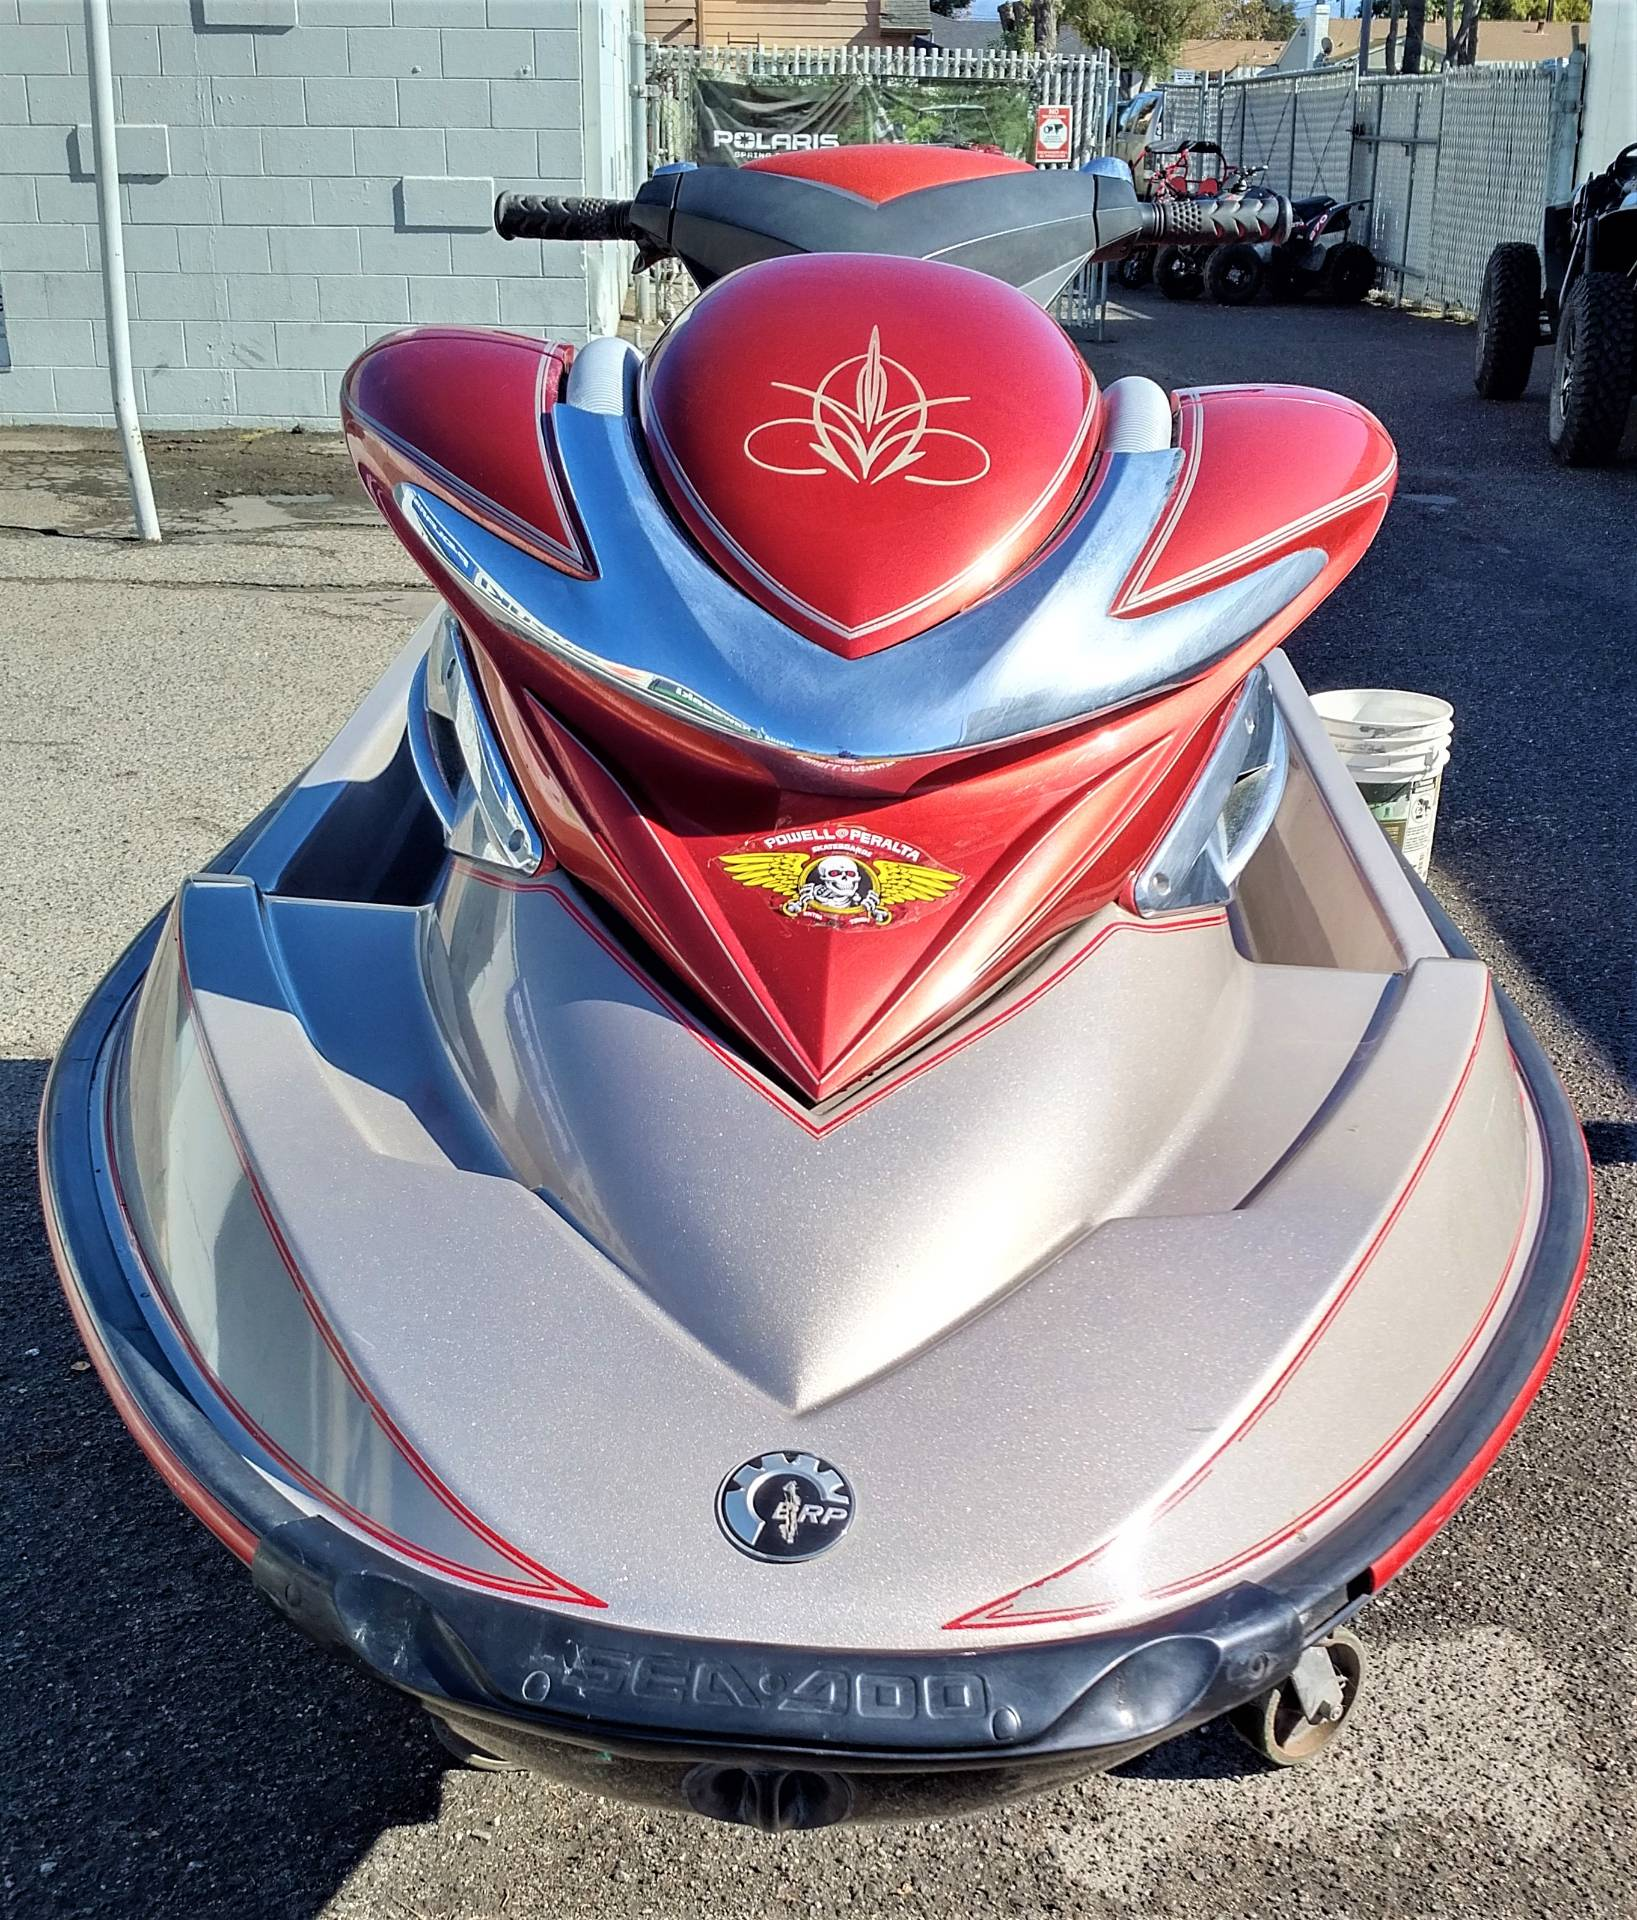 2005 Sea-Doo RXP™ in Salinas, California - Photo 5